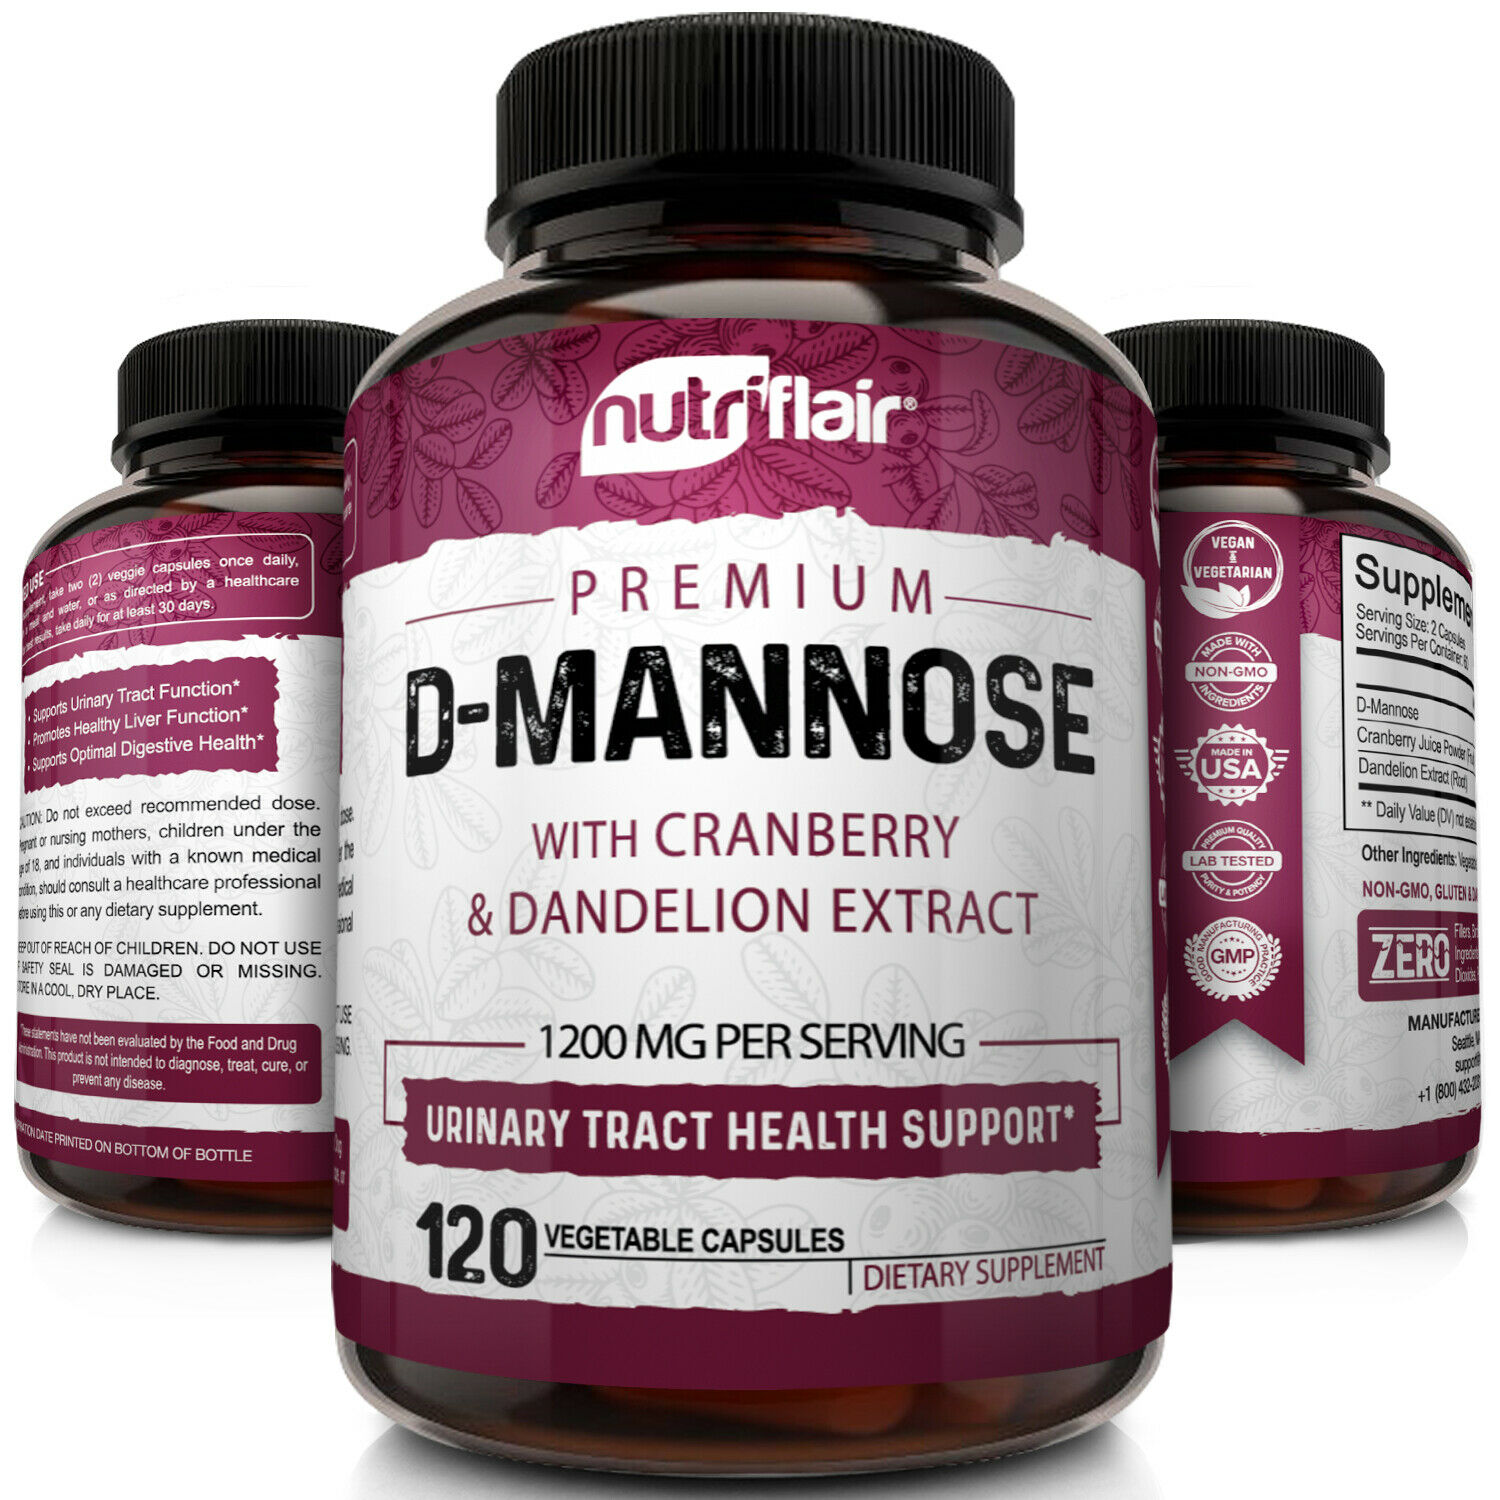 D-Mannose 1200mg, 120 Capsules with Cranberry & Dandelion Extract - UTI Support